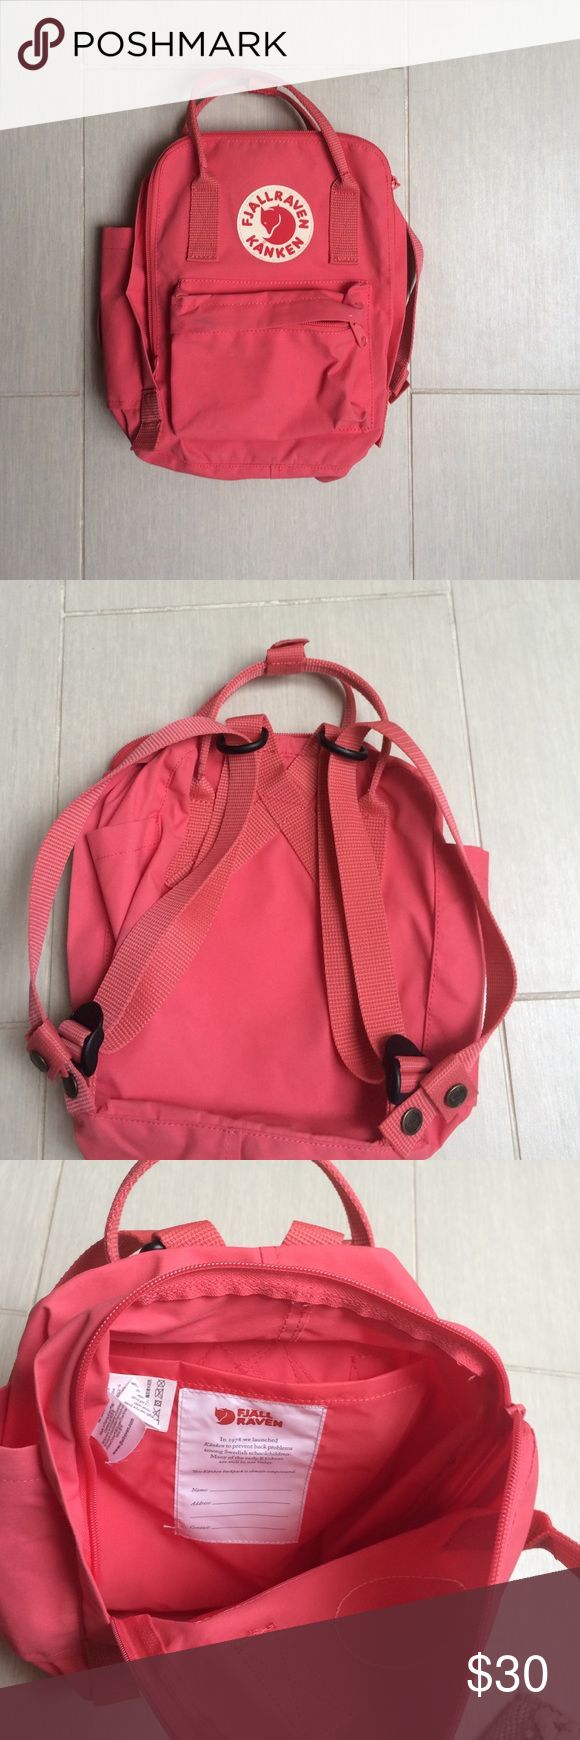 NWOT Mini fjallraven kanken pink backpack Worn once or twice but I've grown out of it pretty quickly no signs of damage or wear Urban Outfitters Bags